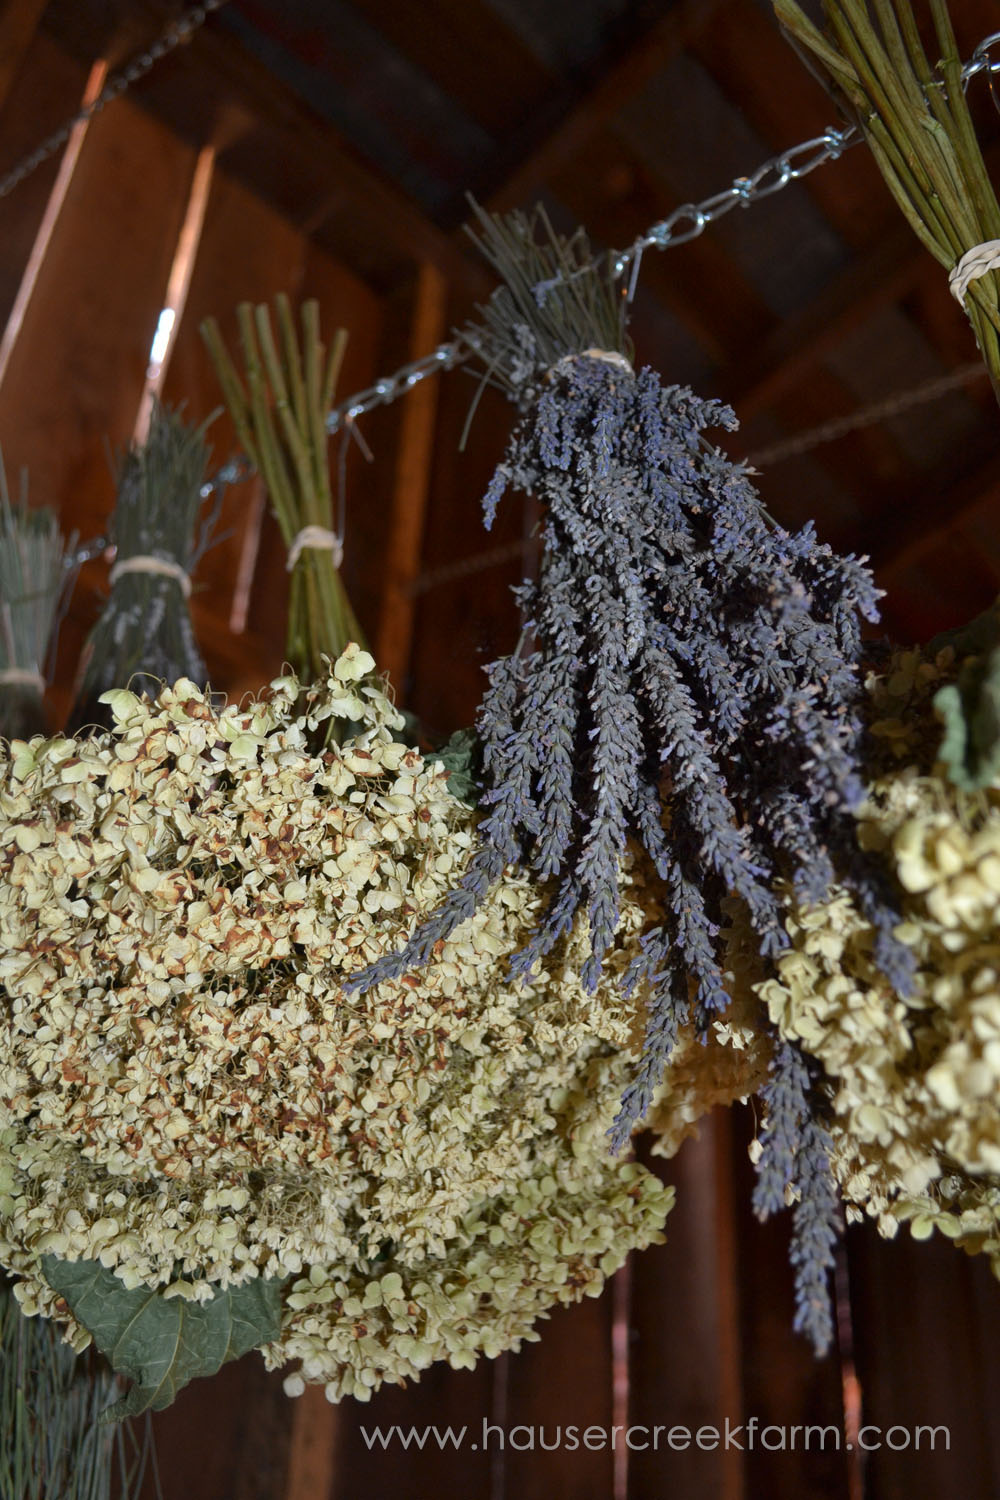 bundles-of-lavender-hanging-upside-down-to-dry-in-barn-DSC_0569.jpg